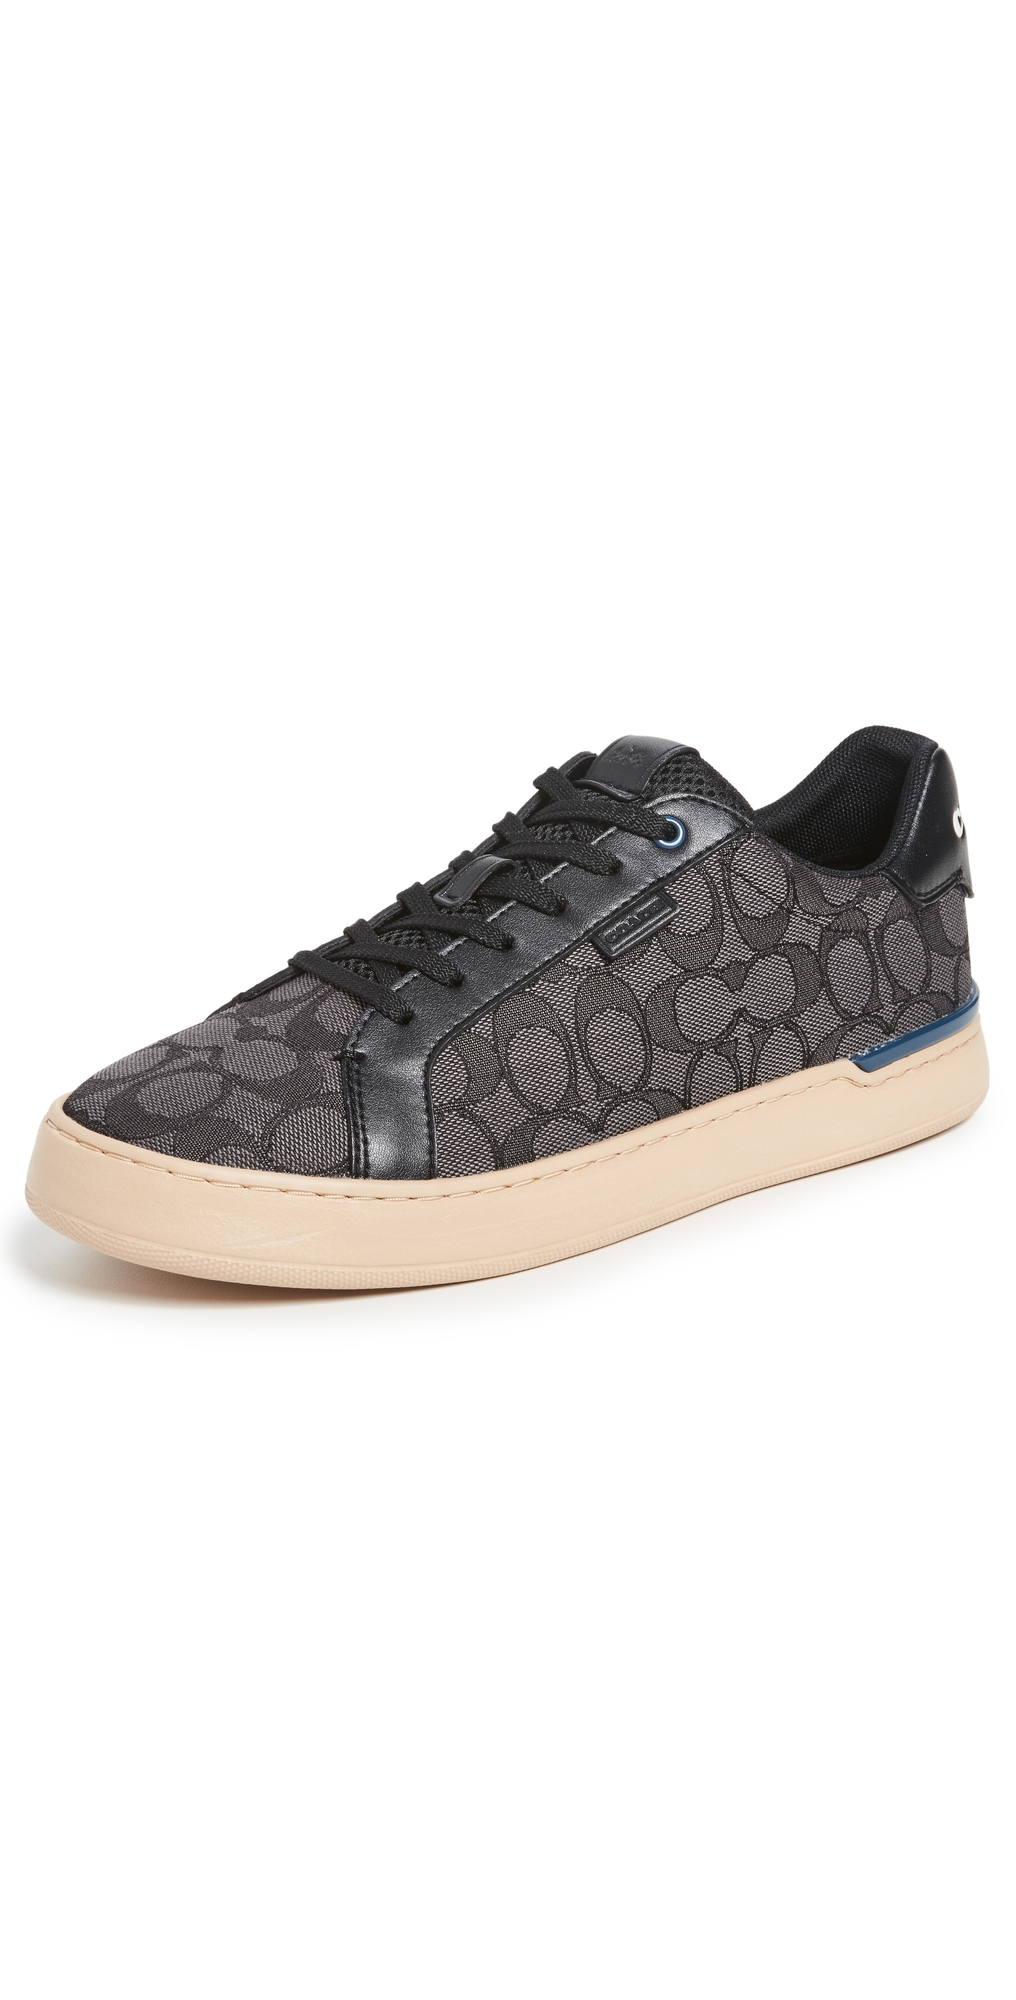 Lowline Signature Jacquard Low Top Sneakers